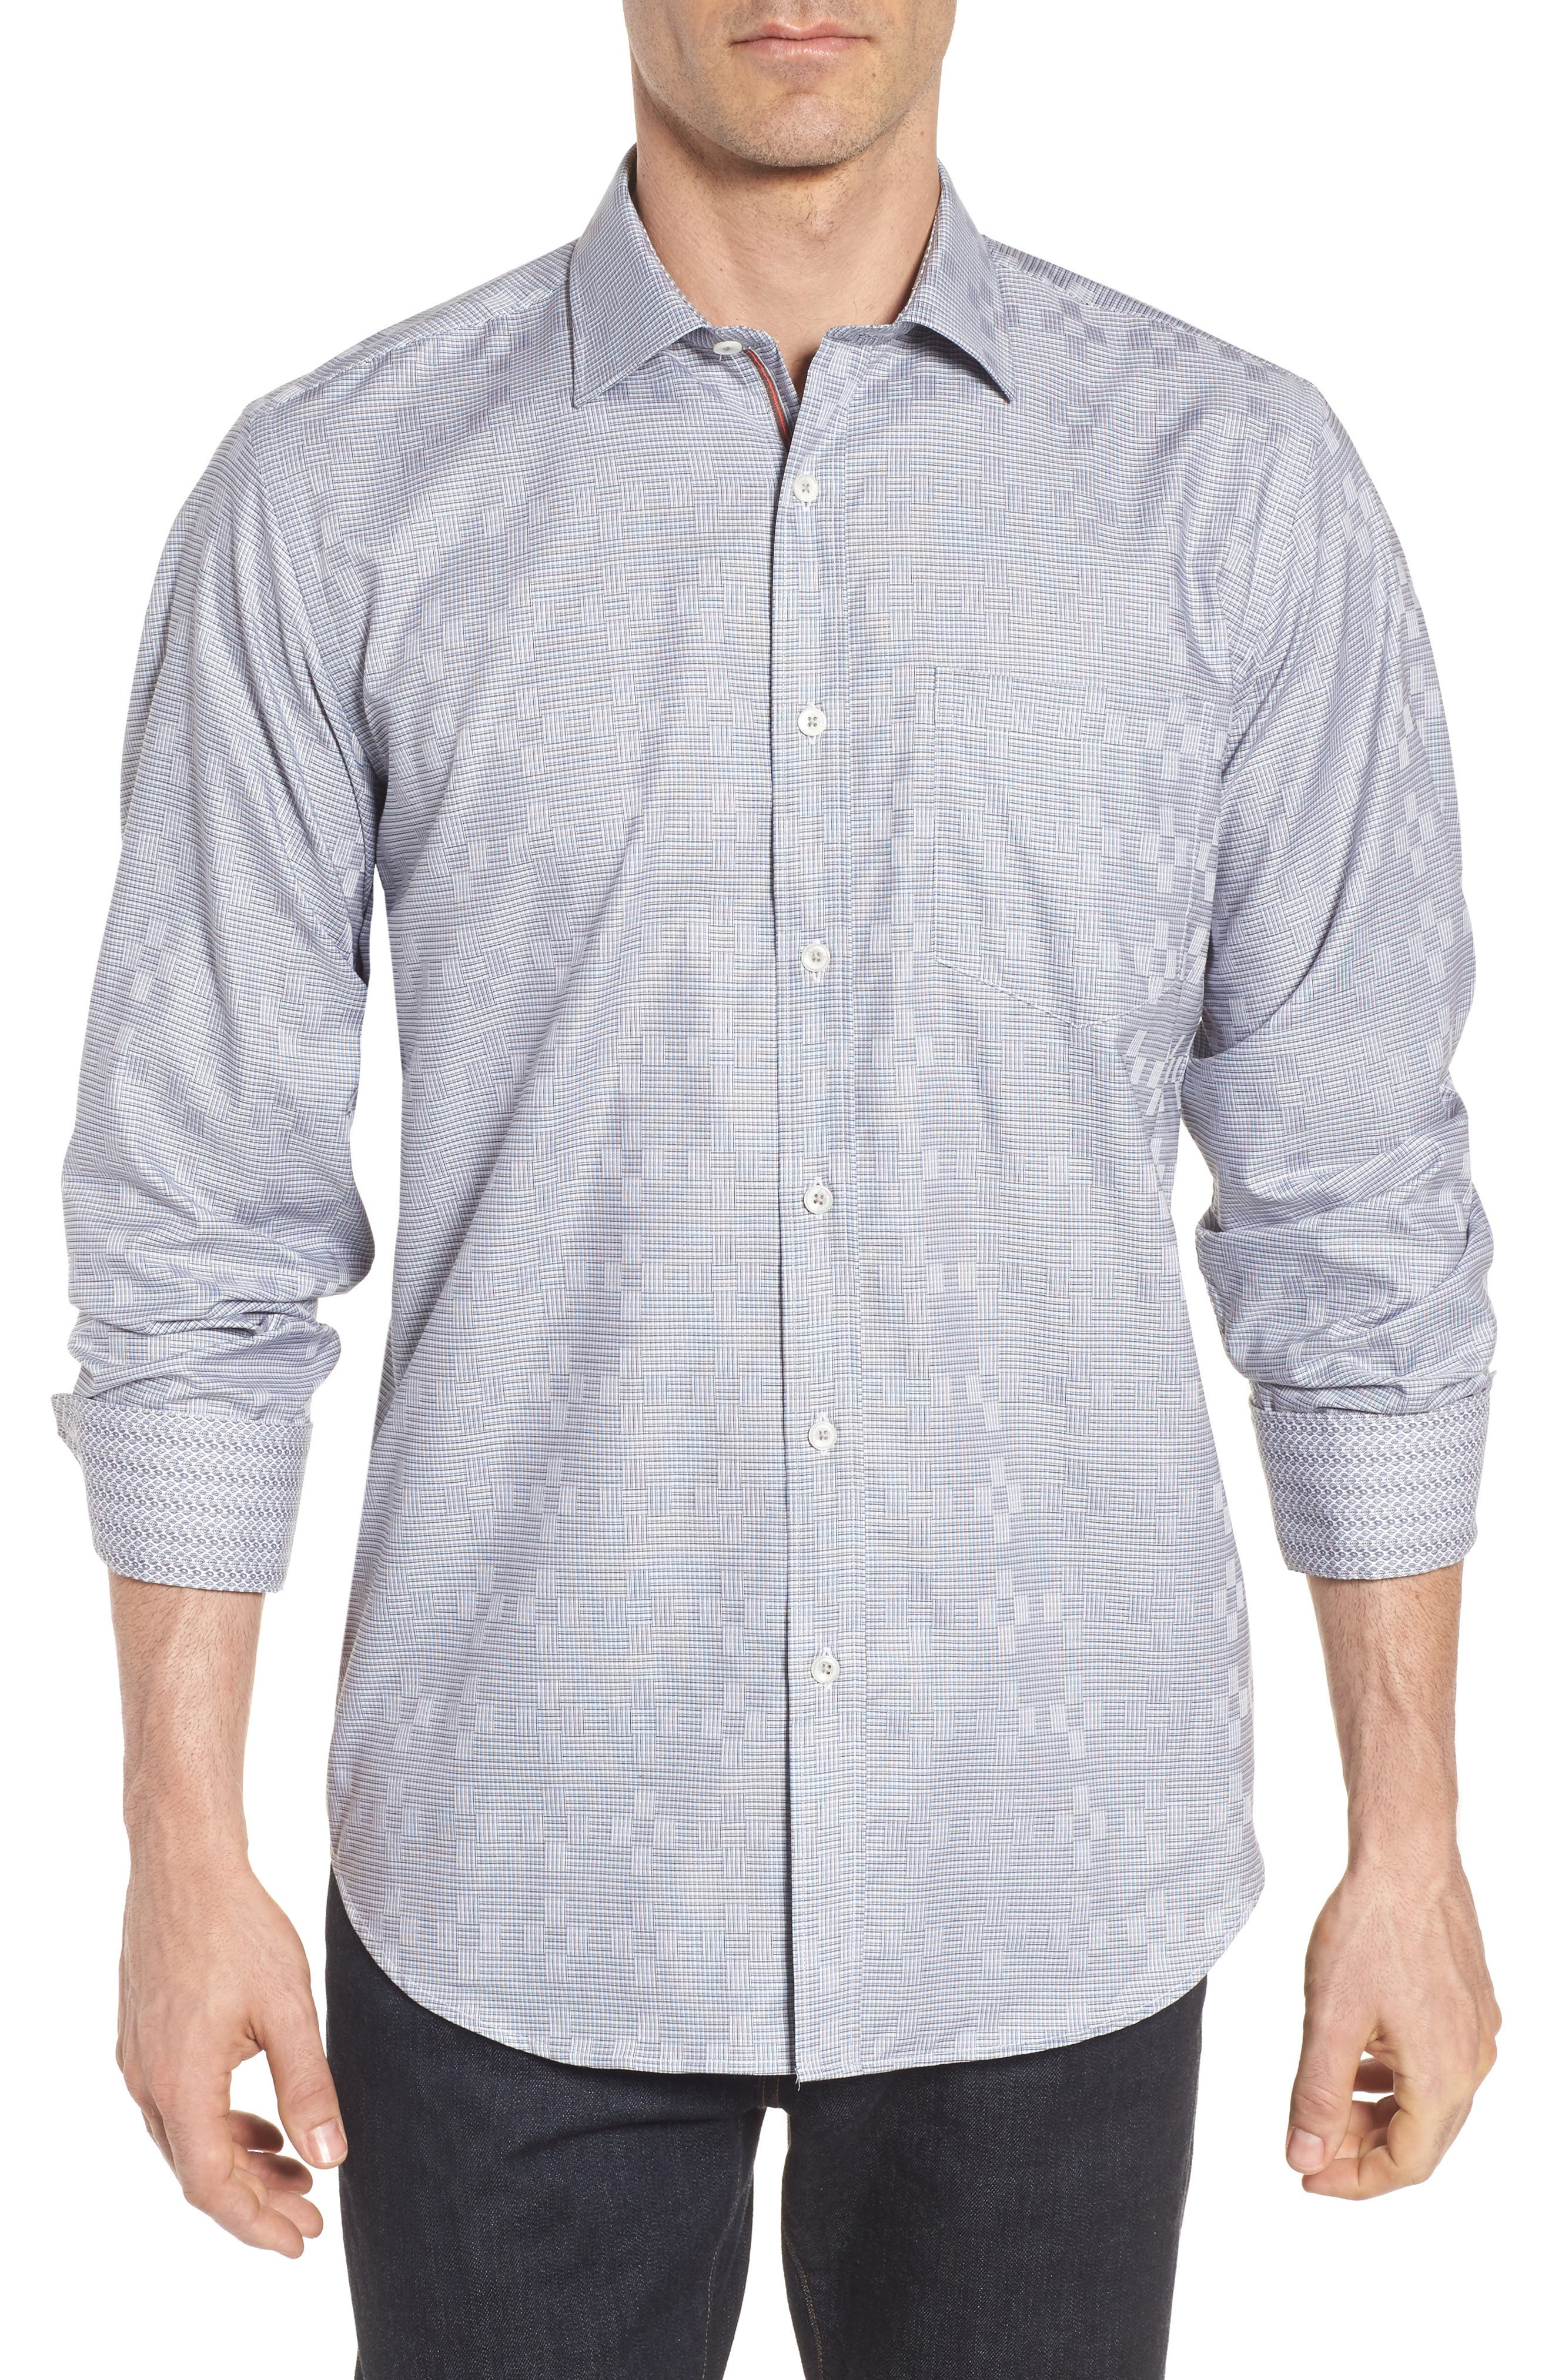 Alternate Image 1 Selected - Bugatchi Classic Fit Print Sport Shirt